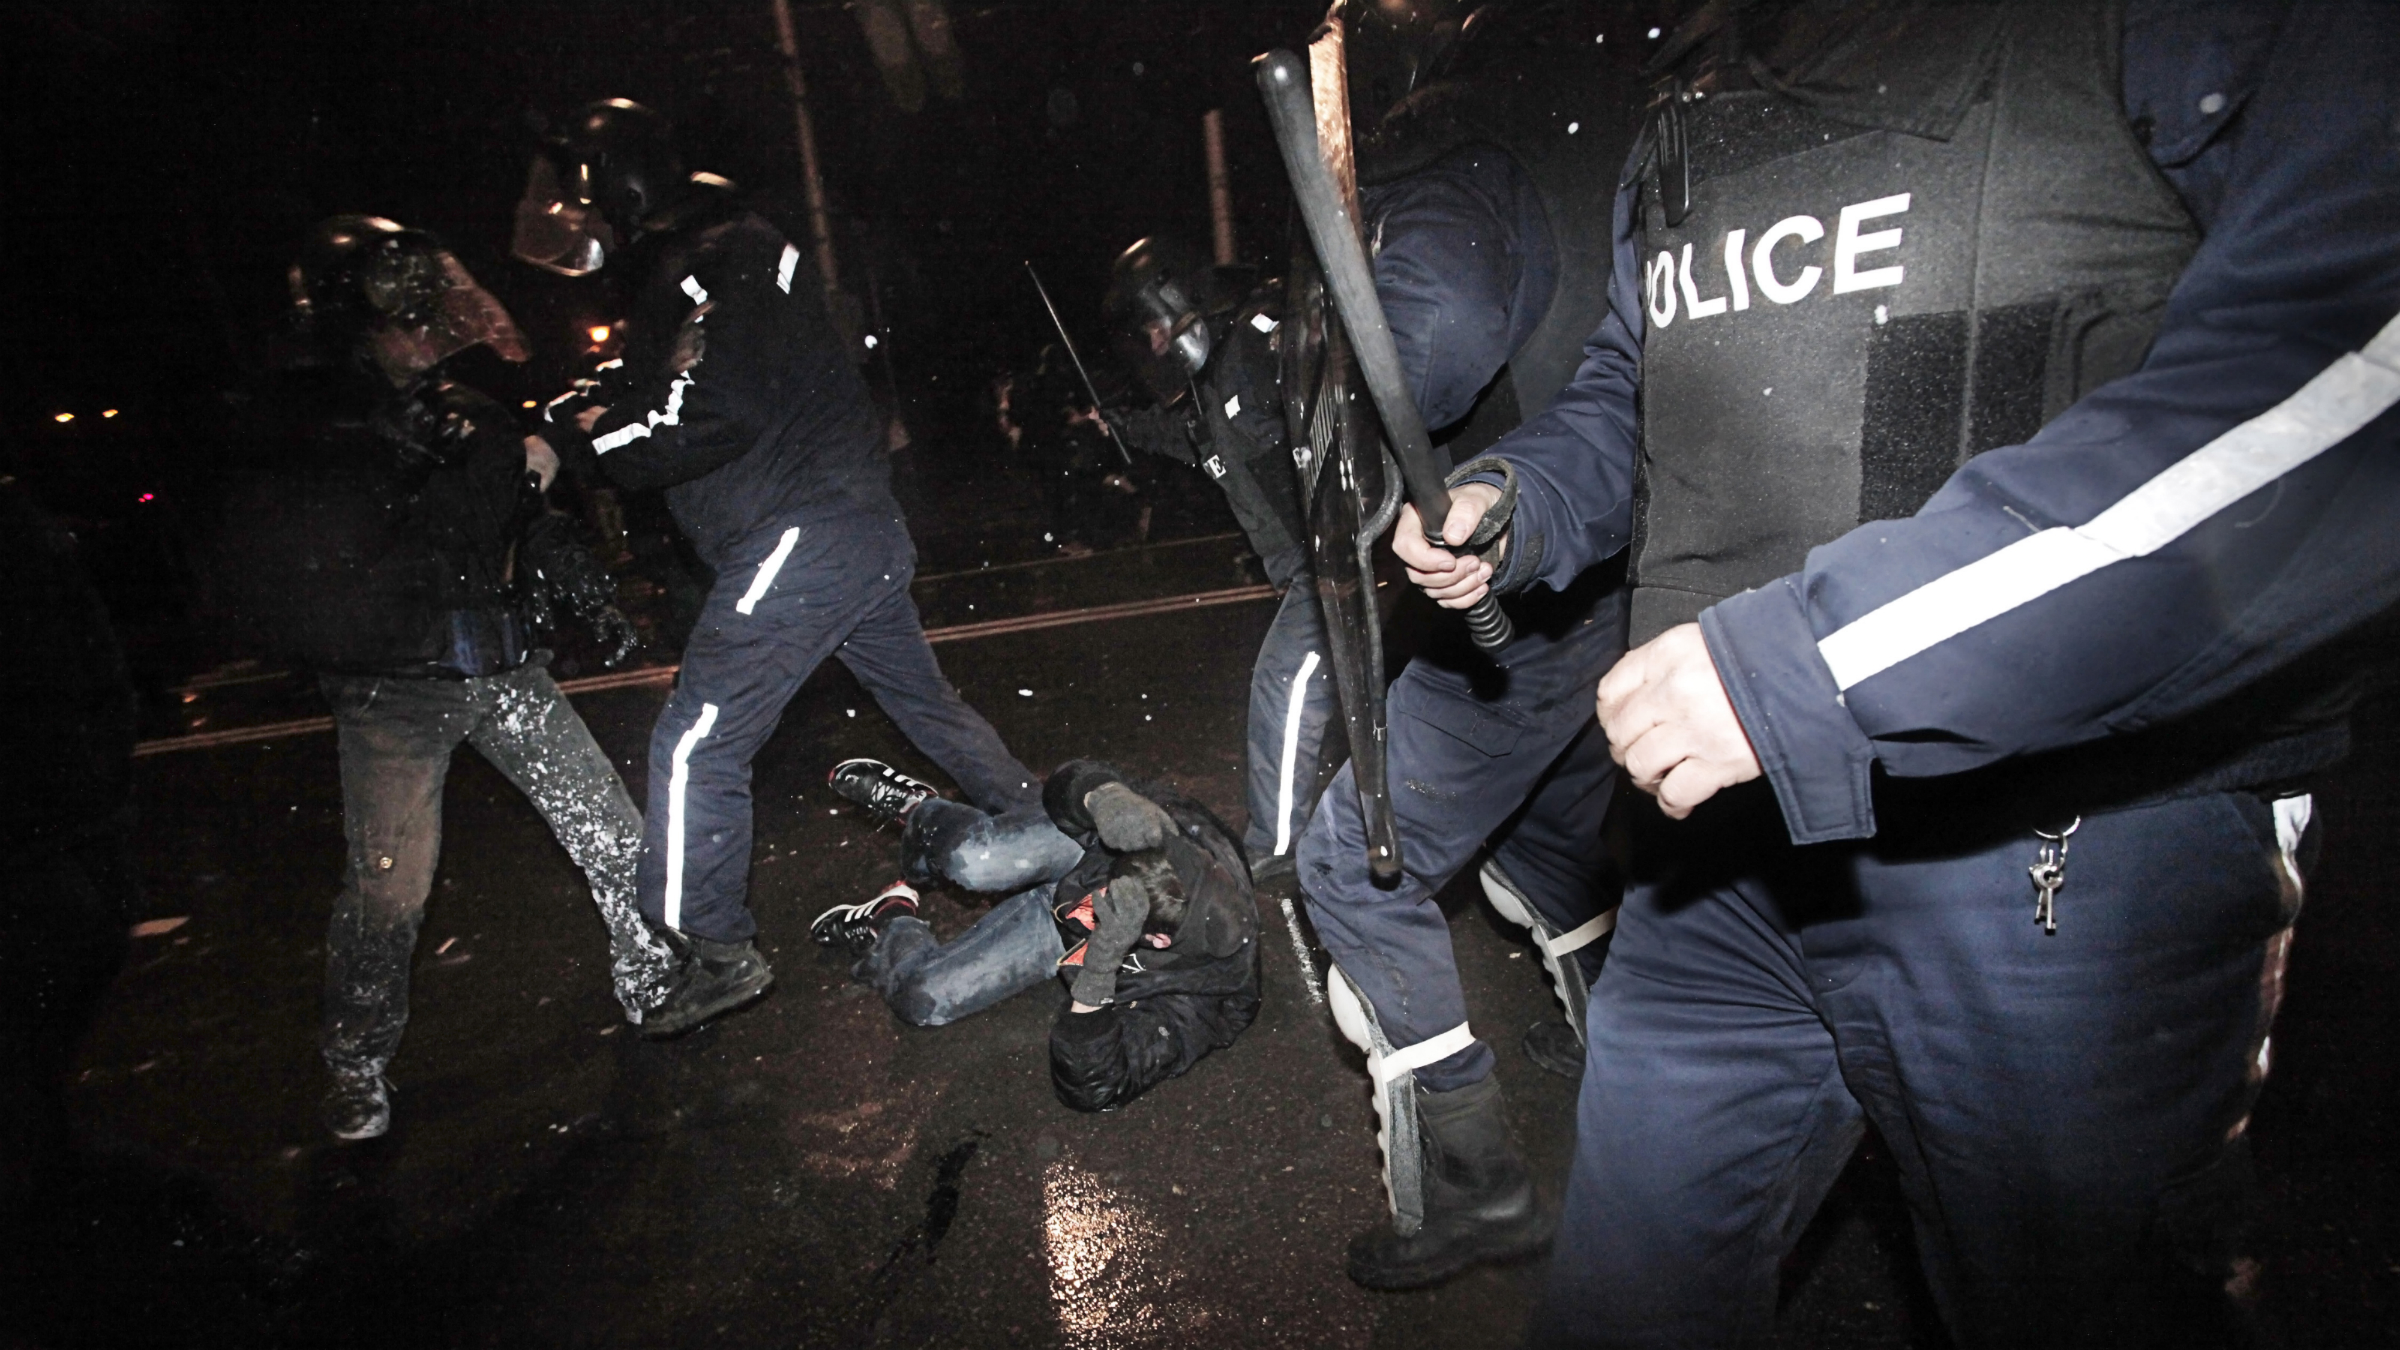 Protesters are beaten and detained by the riot police during a protest against high electricity prices in Sofia, on late Tuesday, Feb. 19, 2013. Bulgaria's prime minister announced on Tuesday that the license held by a Czech company for power distribution in parts of the Balkan country will be revoked following protests against high electricity prices.